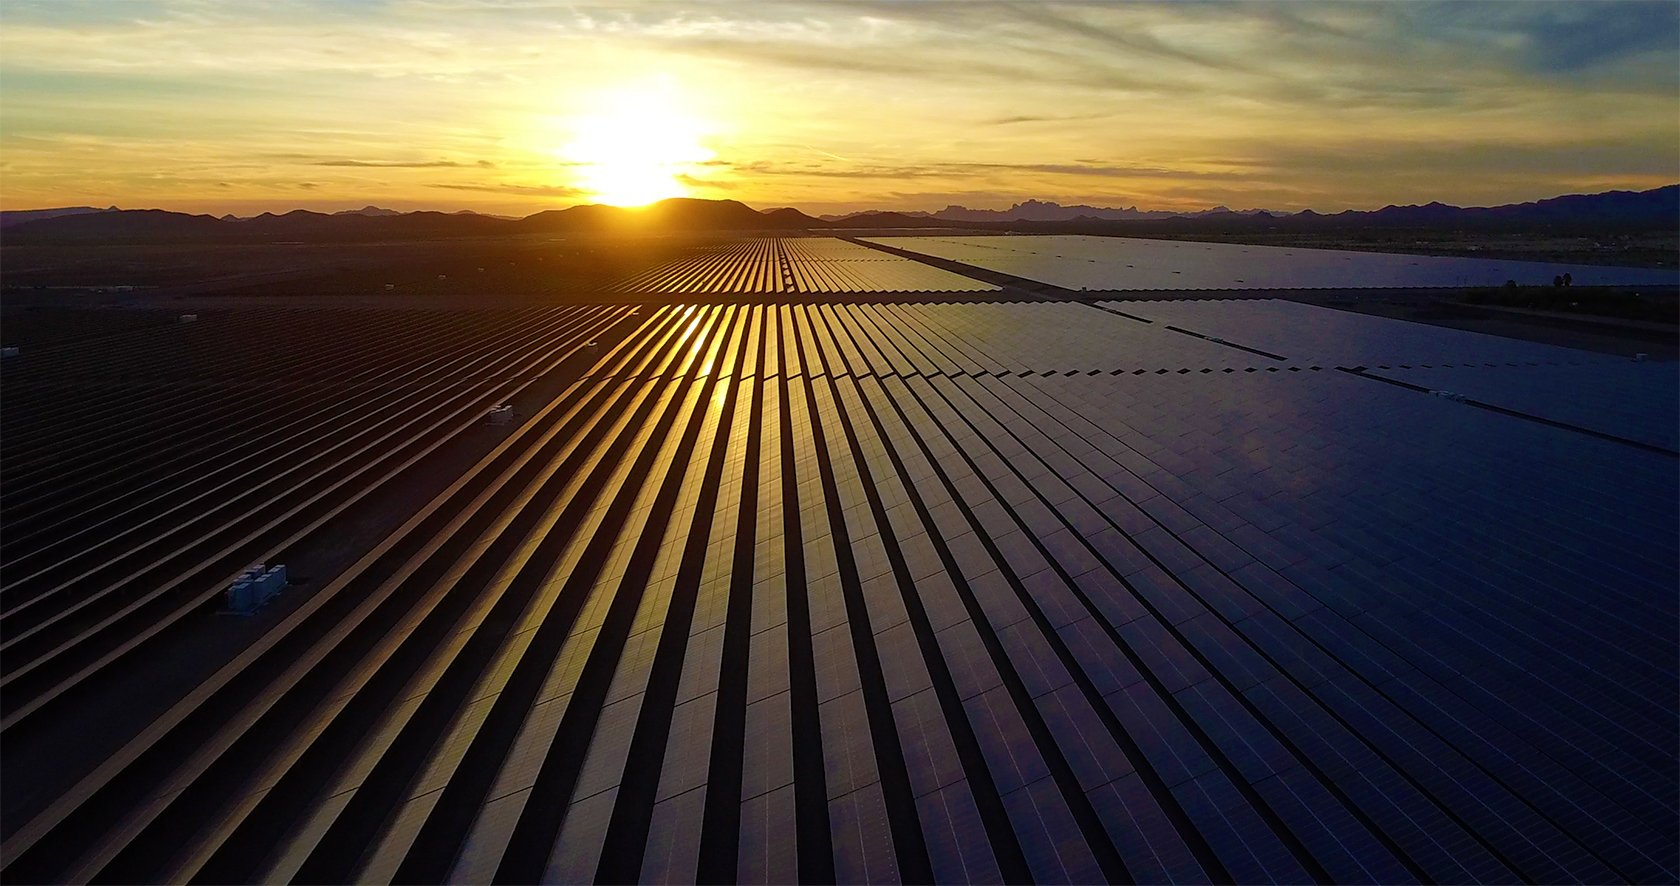 About Us - Mesquite Solar 1 array in Arizona